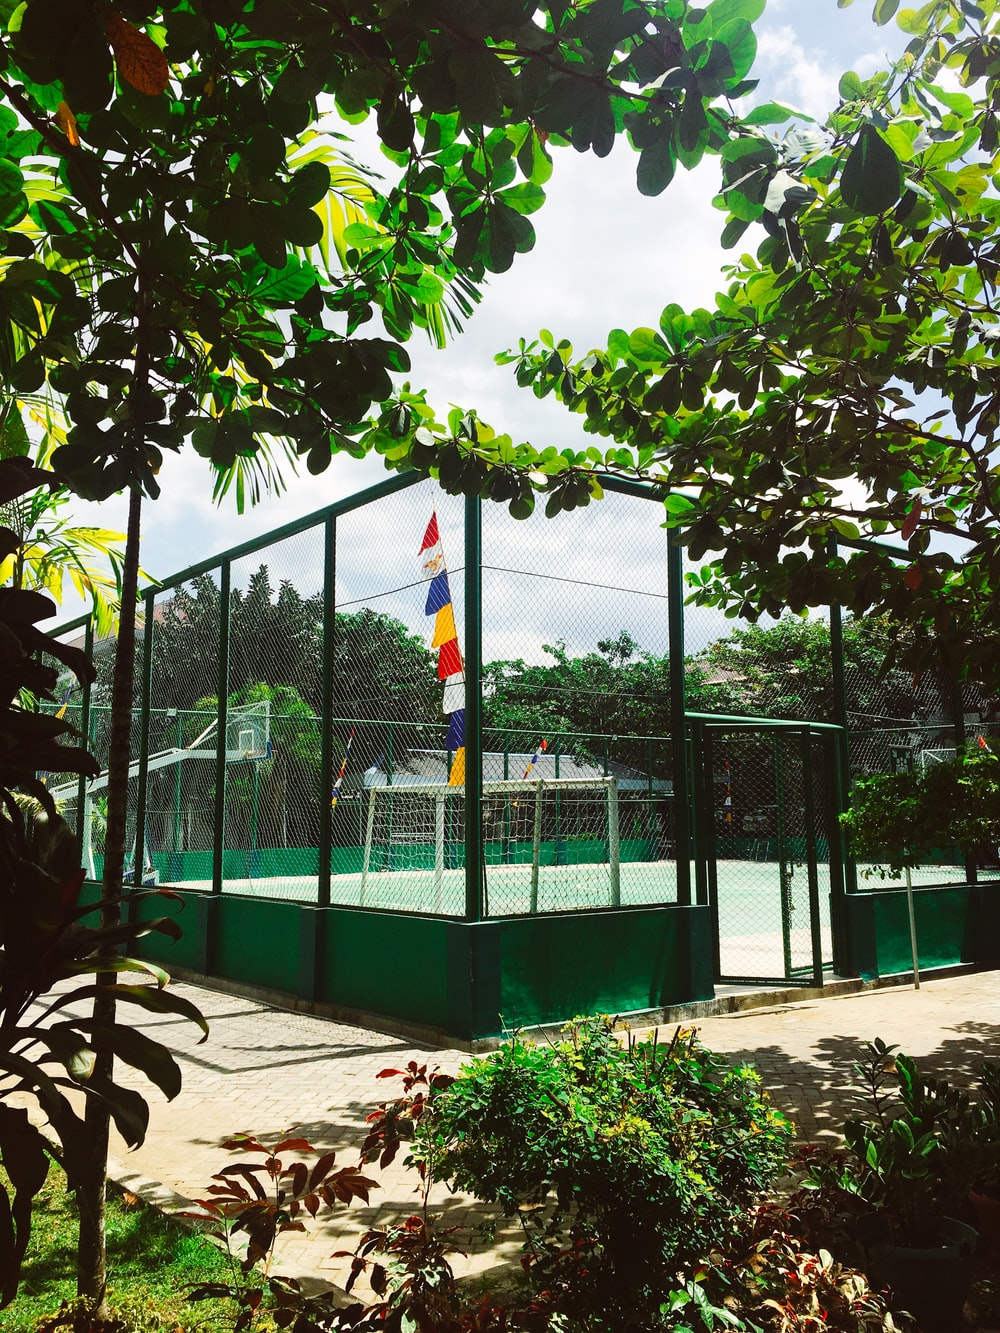 playing court near trees